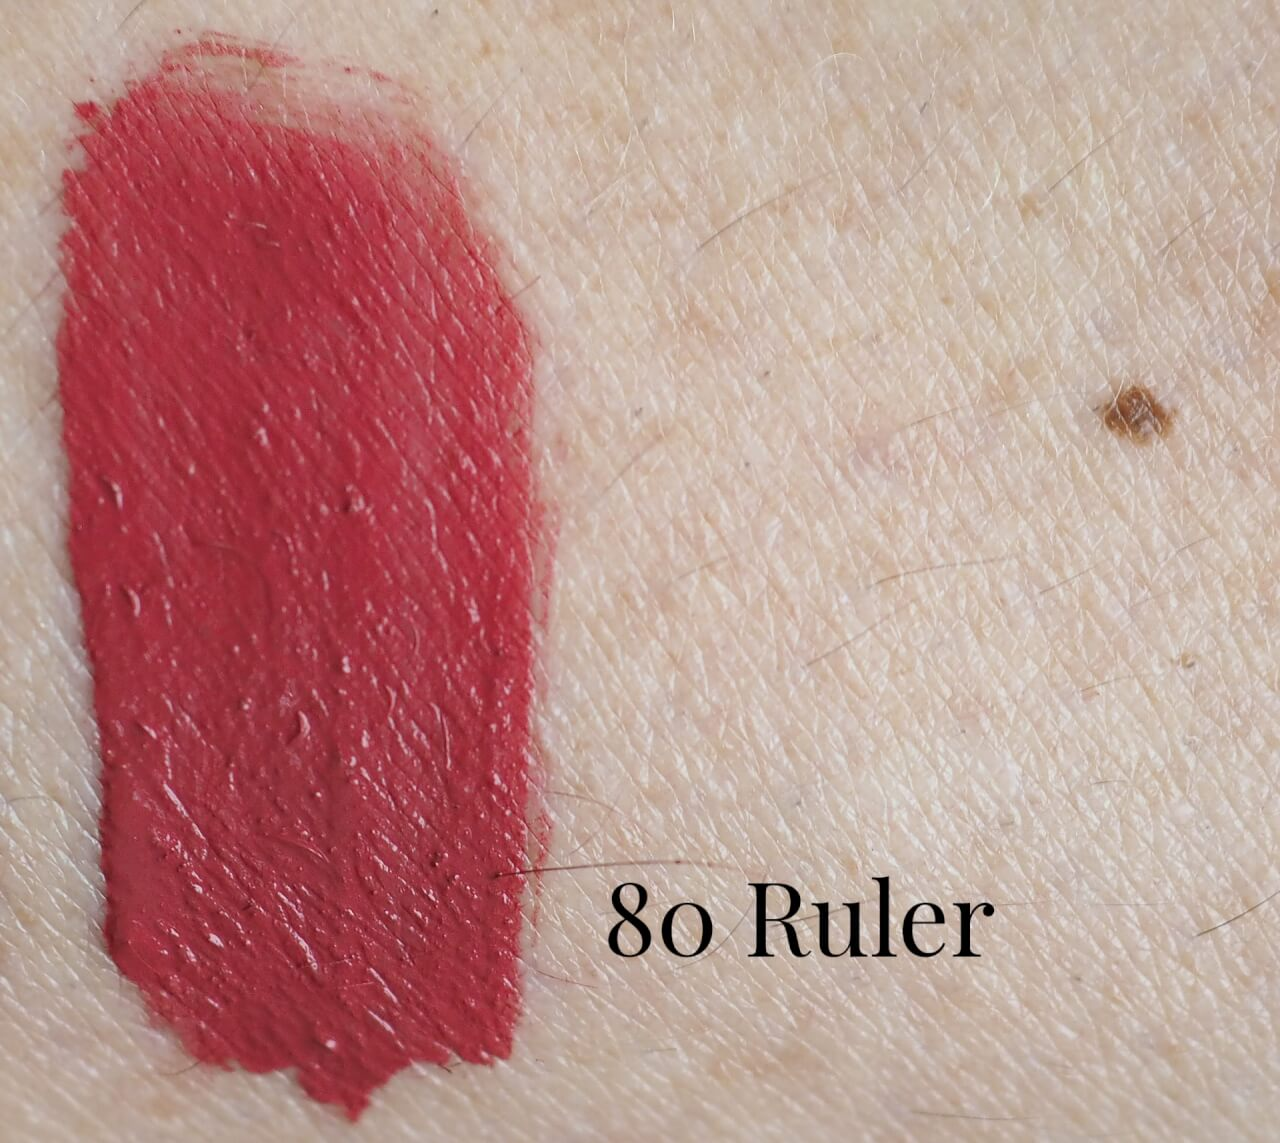 80 Ruler Super Stay Matte Ink